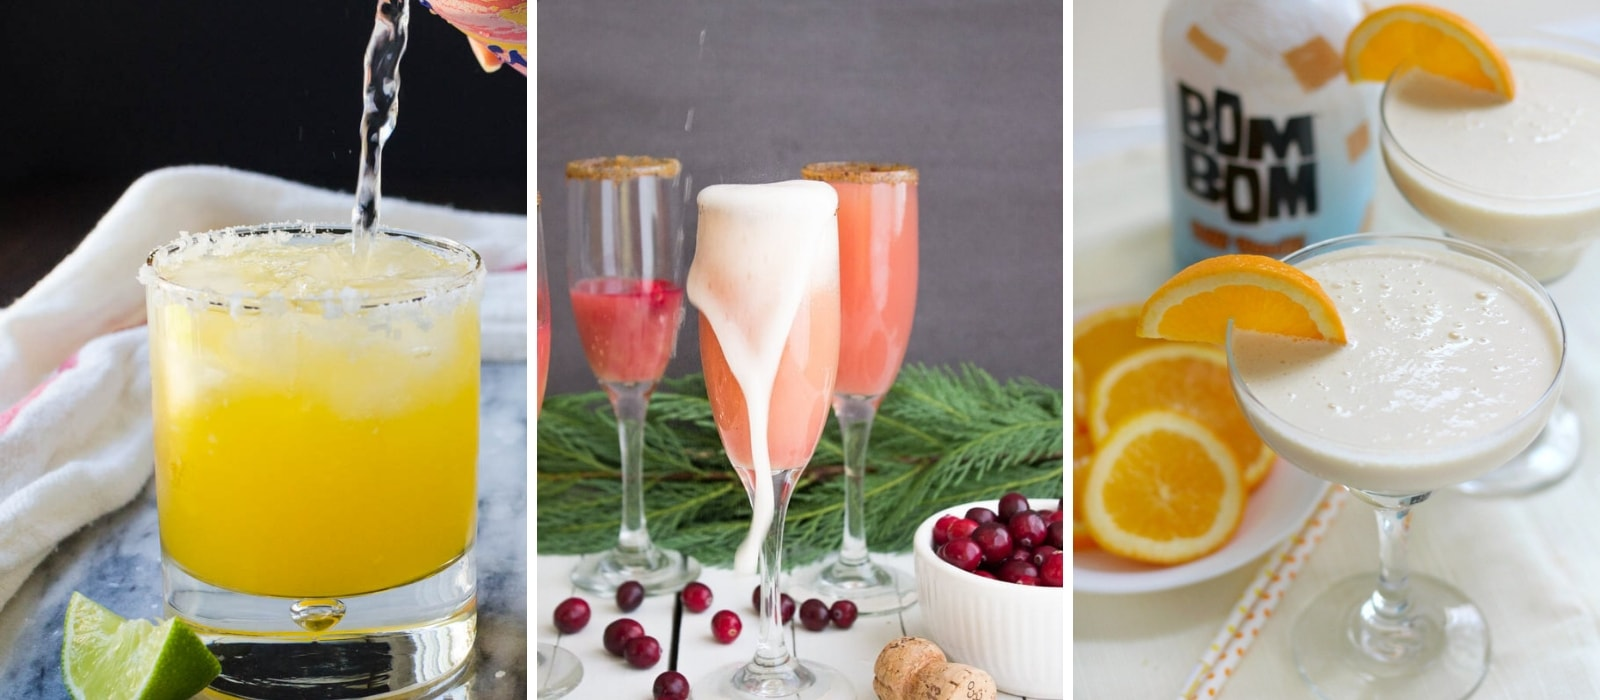 Orange Cocktail Recipes| Orange Wedding Cocktails| Wedding Cocktails| The Best Orange Cocktails For Your Wedding| #cocktail #weddingcocktails #orangewedding #recipes